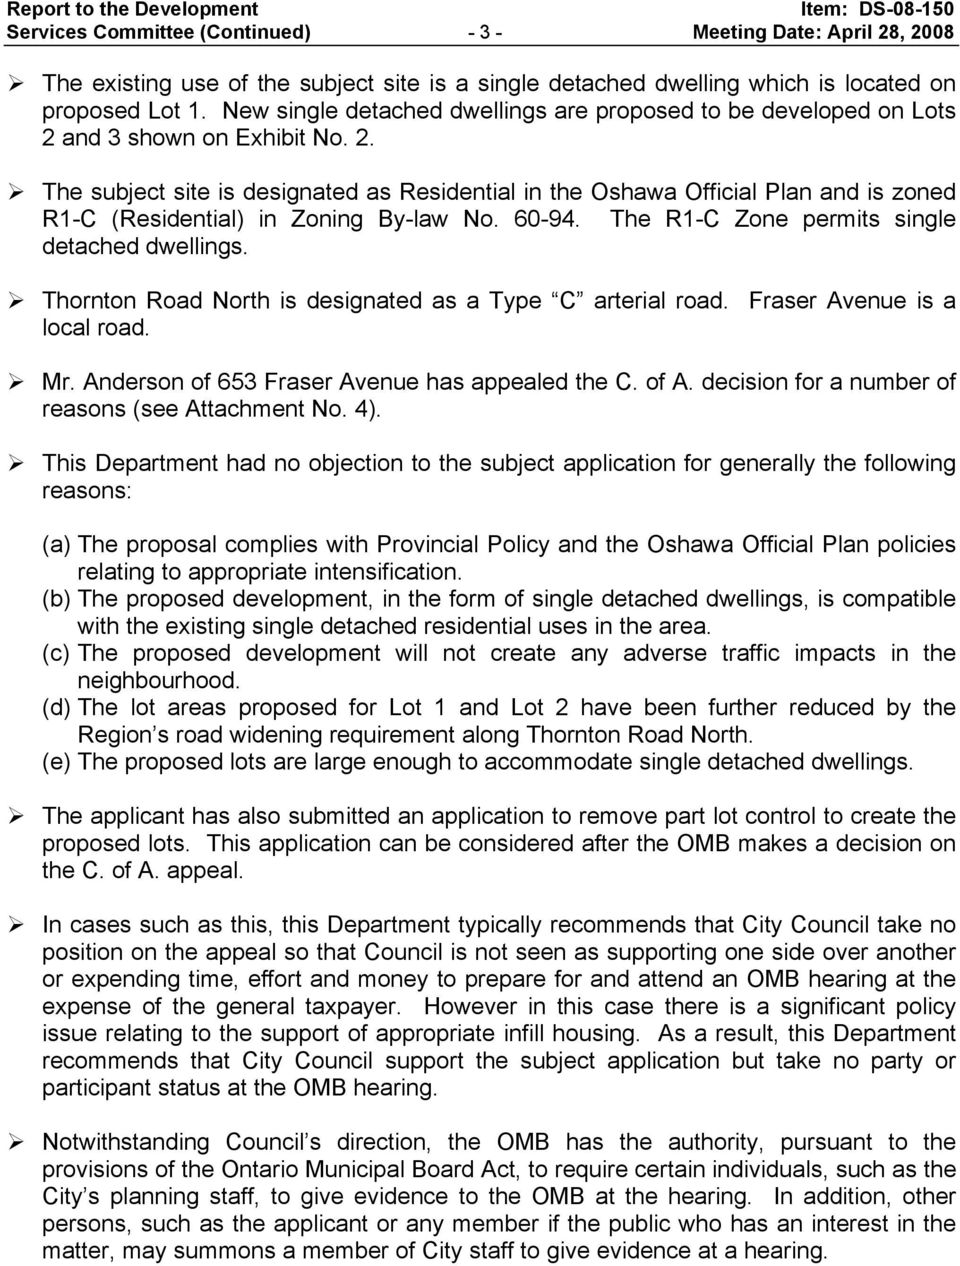 and 3 shown on Exhibit No. 2. The subject site is designated as Residential in the Oshawa Official Plan and is zoned R1-C (Residential) in Zoning By-law No. 60-94.